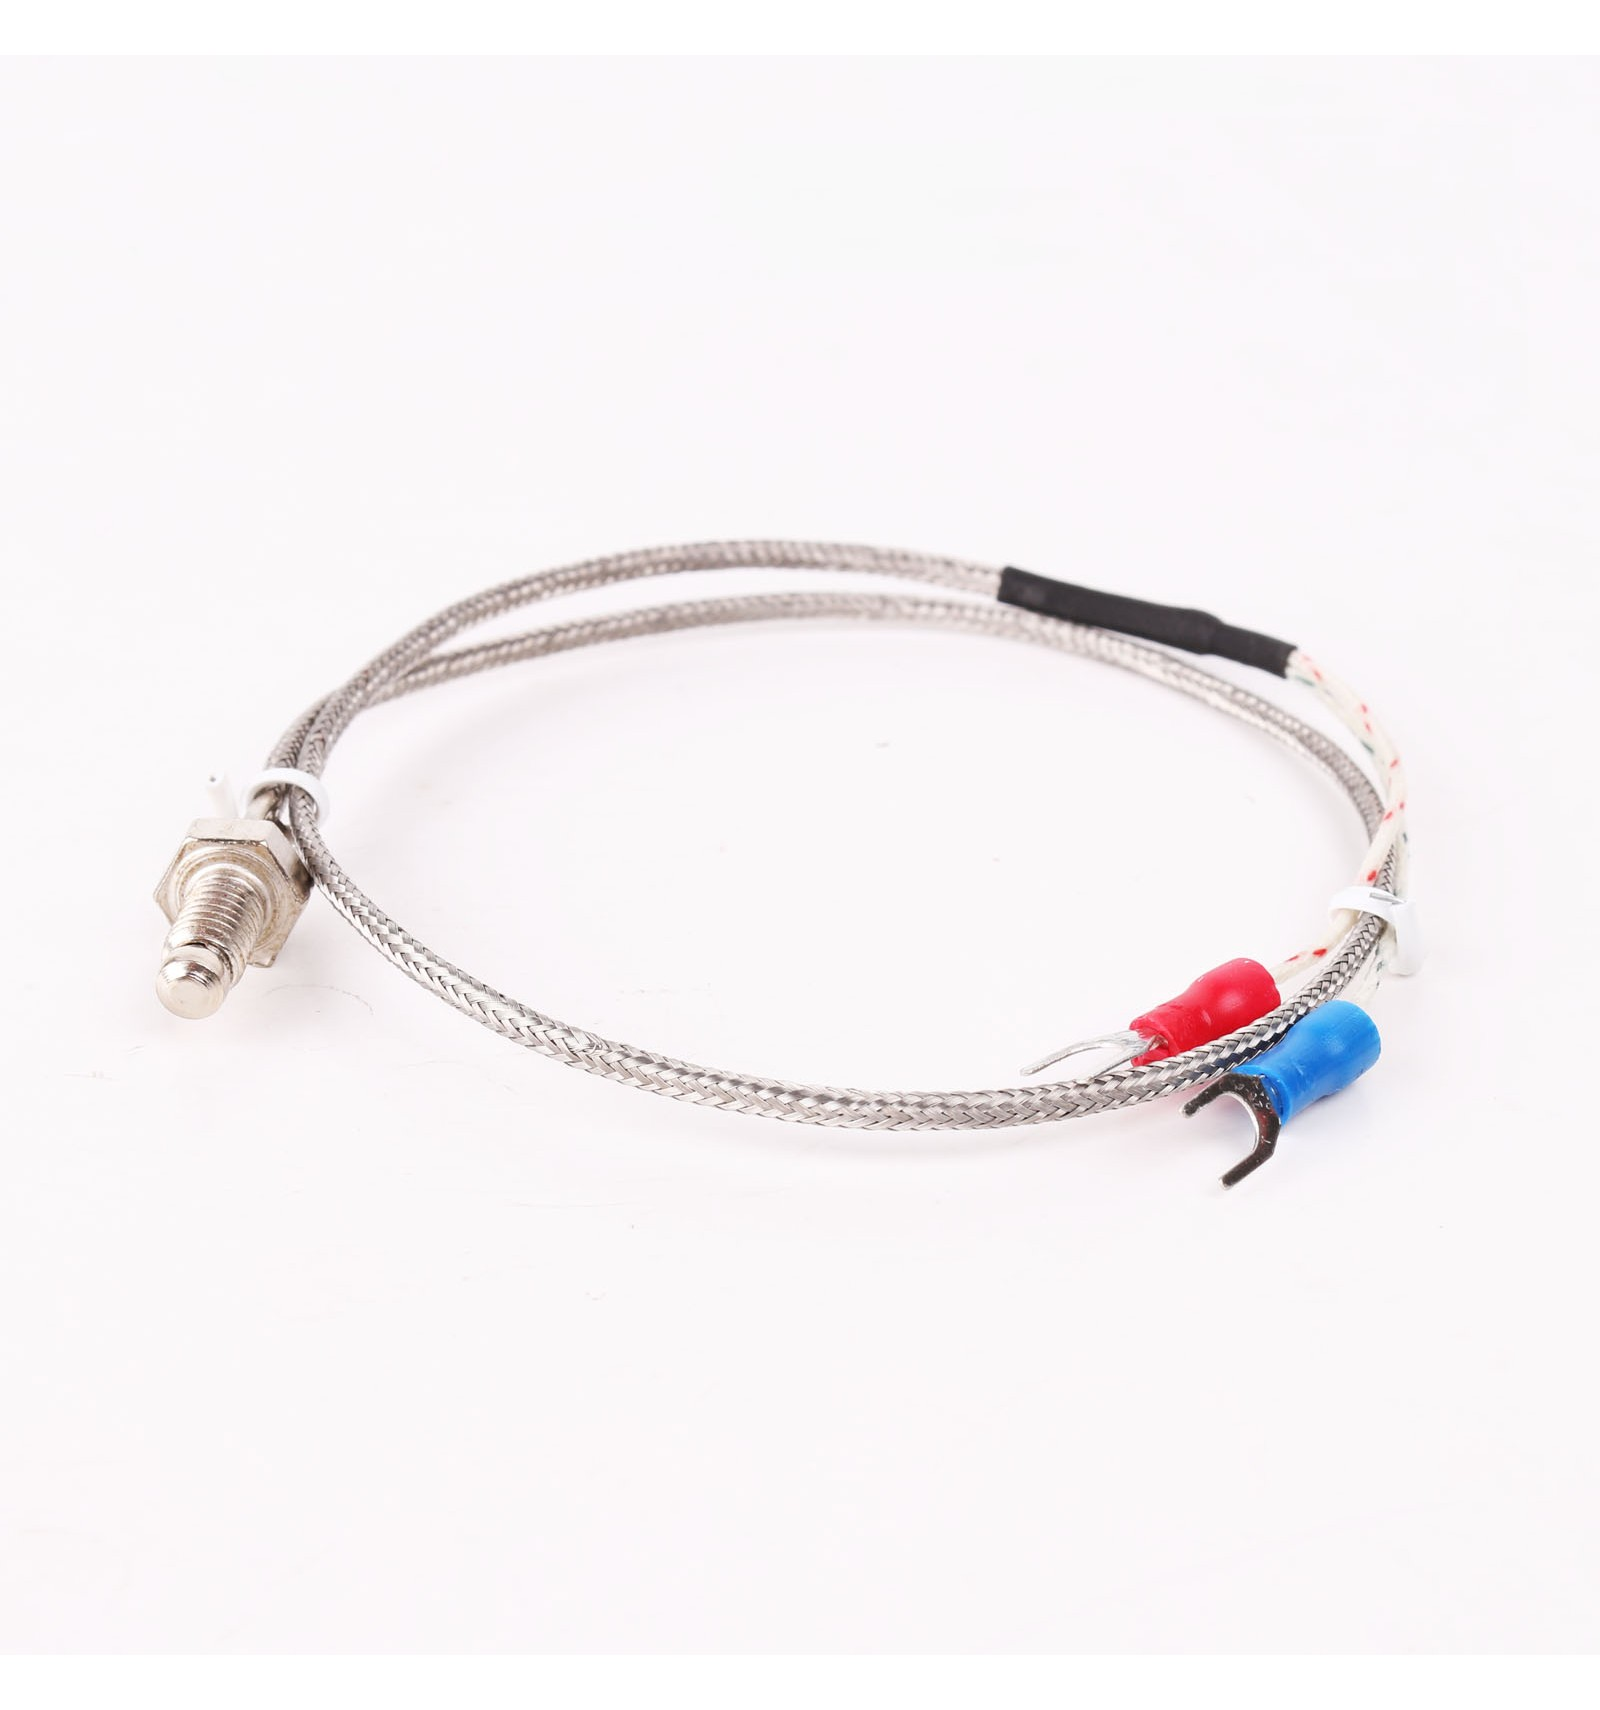 Max K Type Thermocouple Temperature Sensor Kit